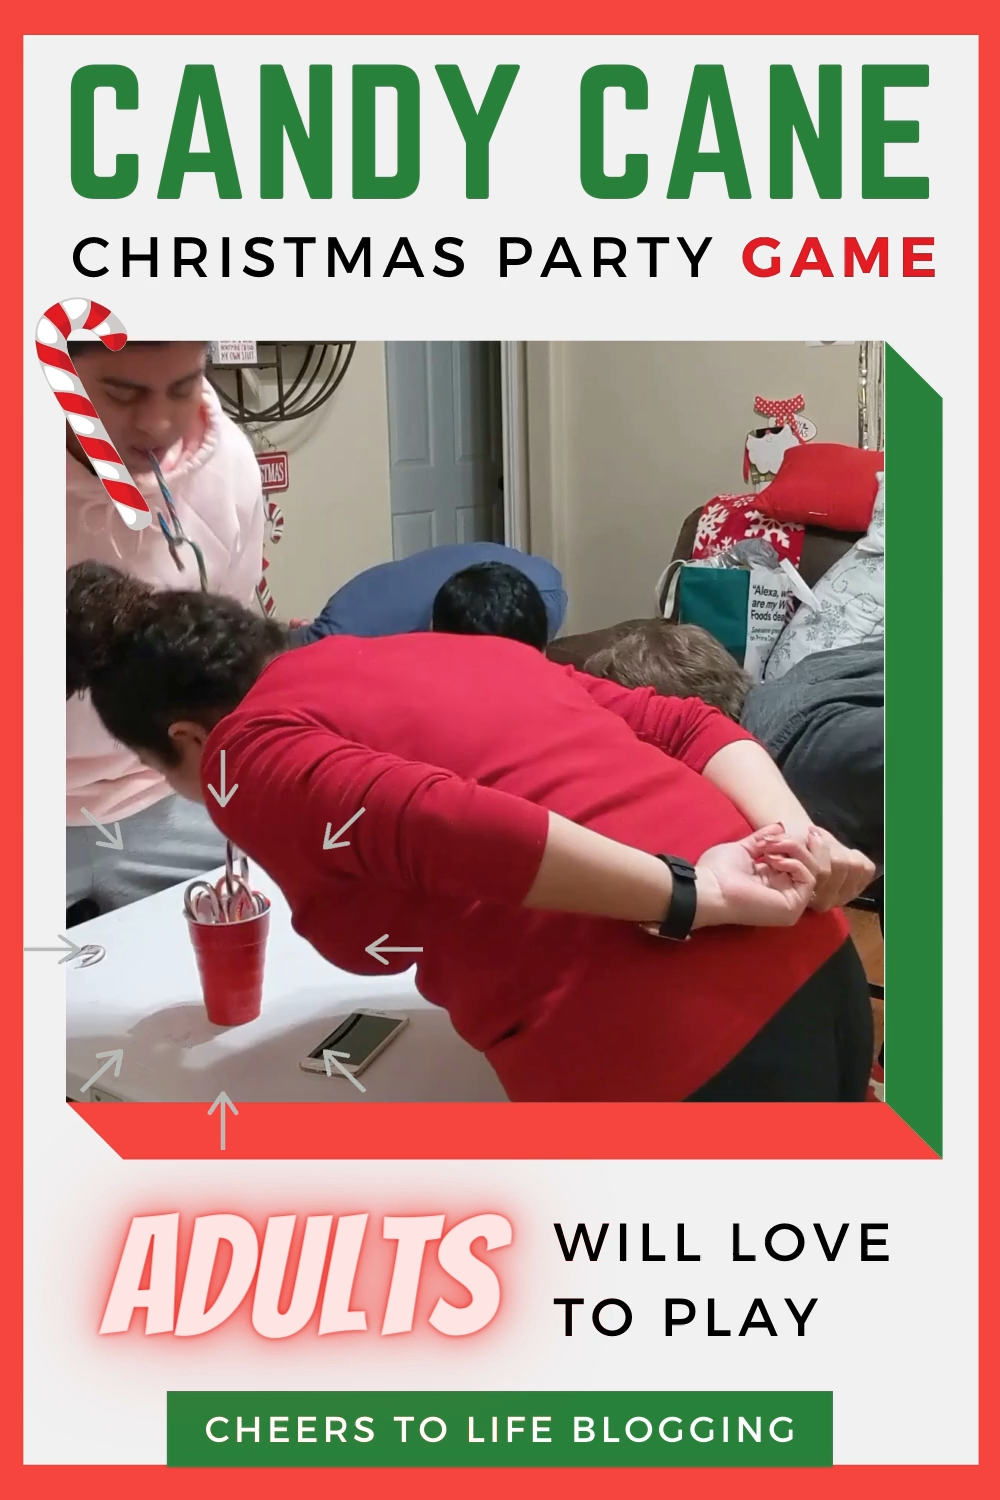 Hosting Christmas Party Games Isn't Stressful, It'